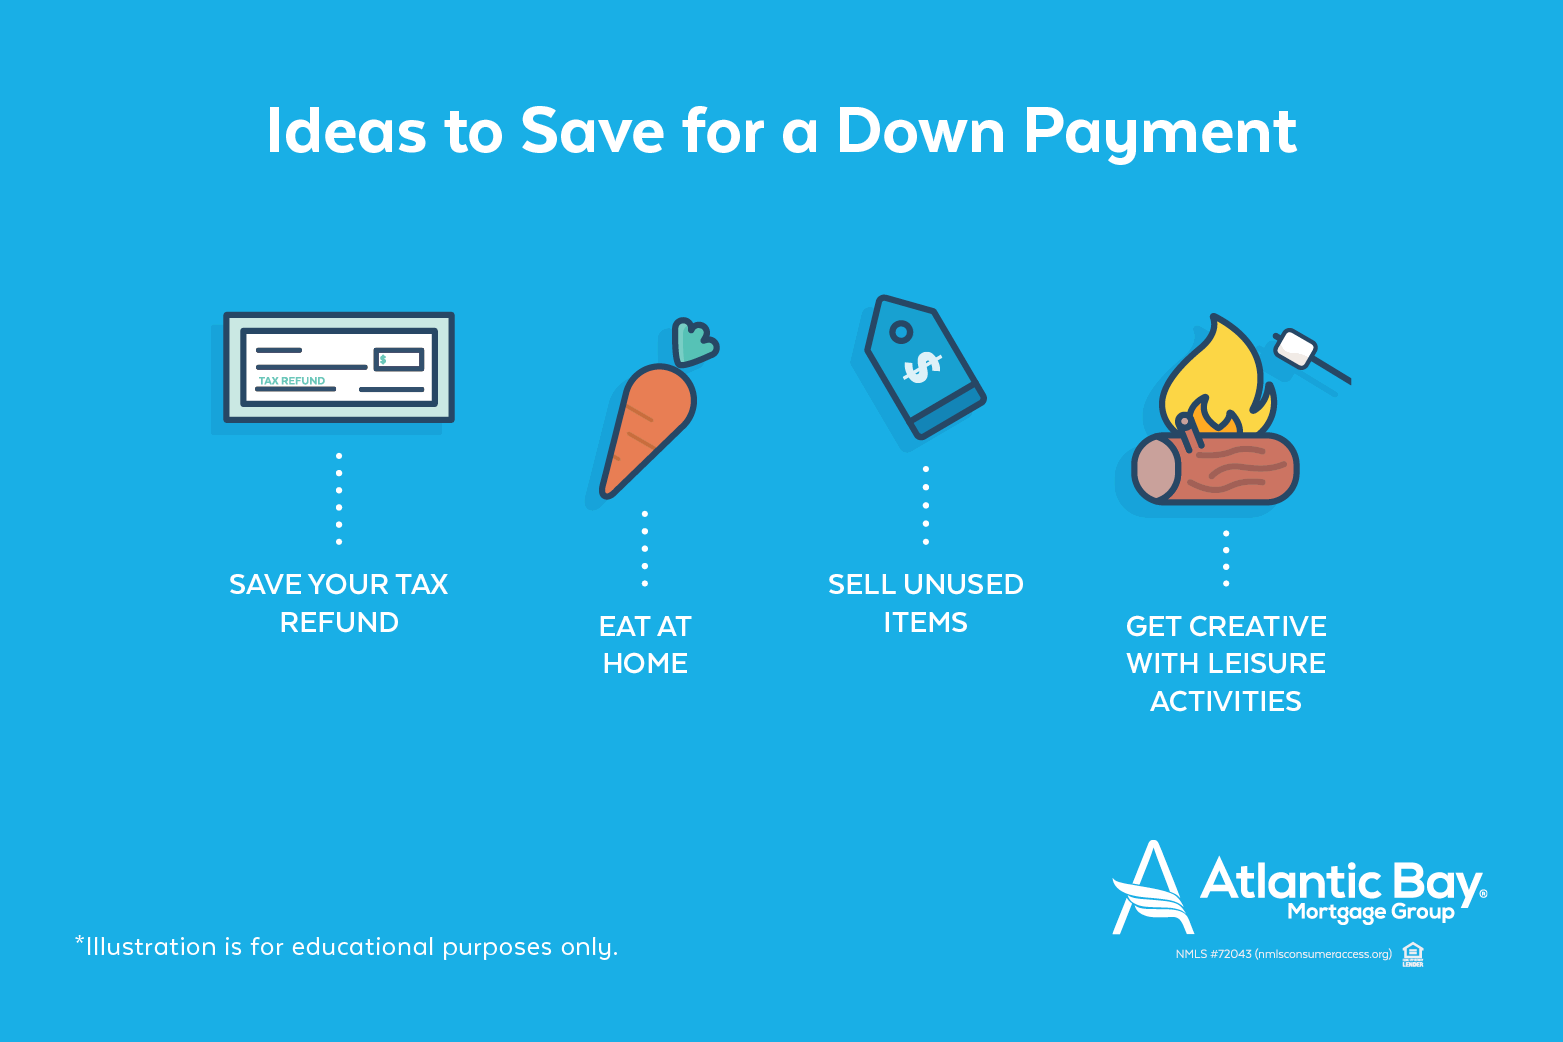 Ideas to Save for Downpayment